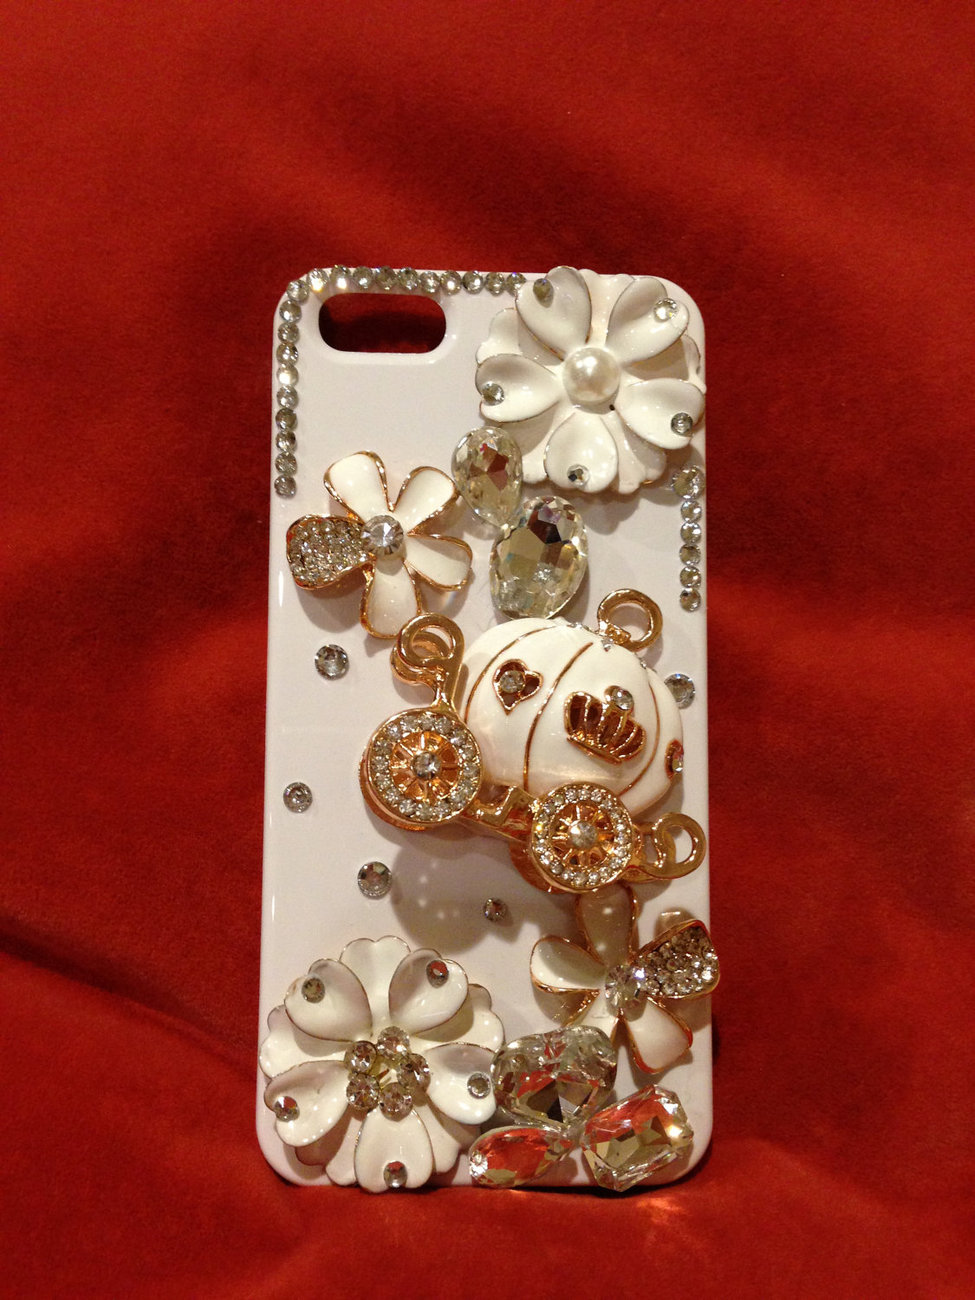 3D Luxury Bling Crystal Cinderella's Pumpkin Cart Stone Case For iphone 4/4s/5 b image 2